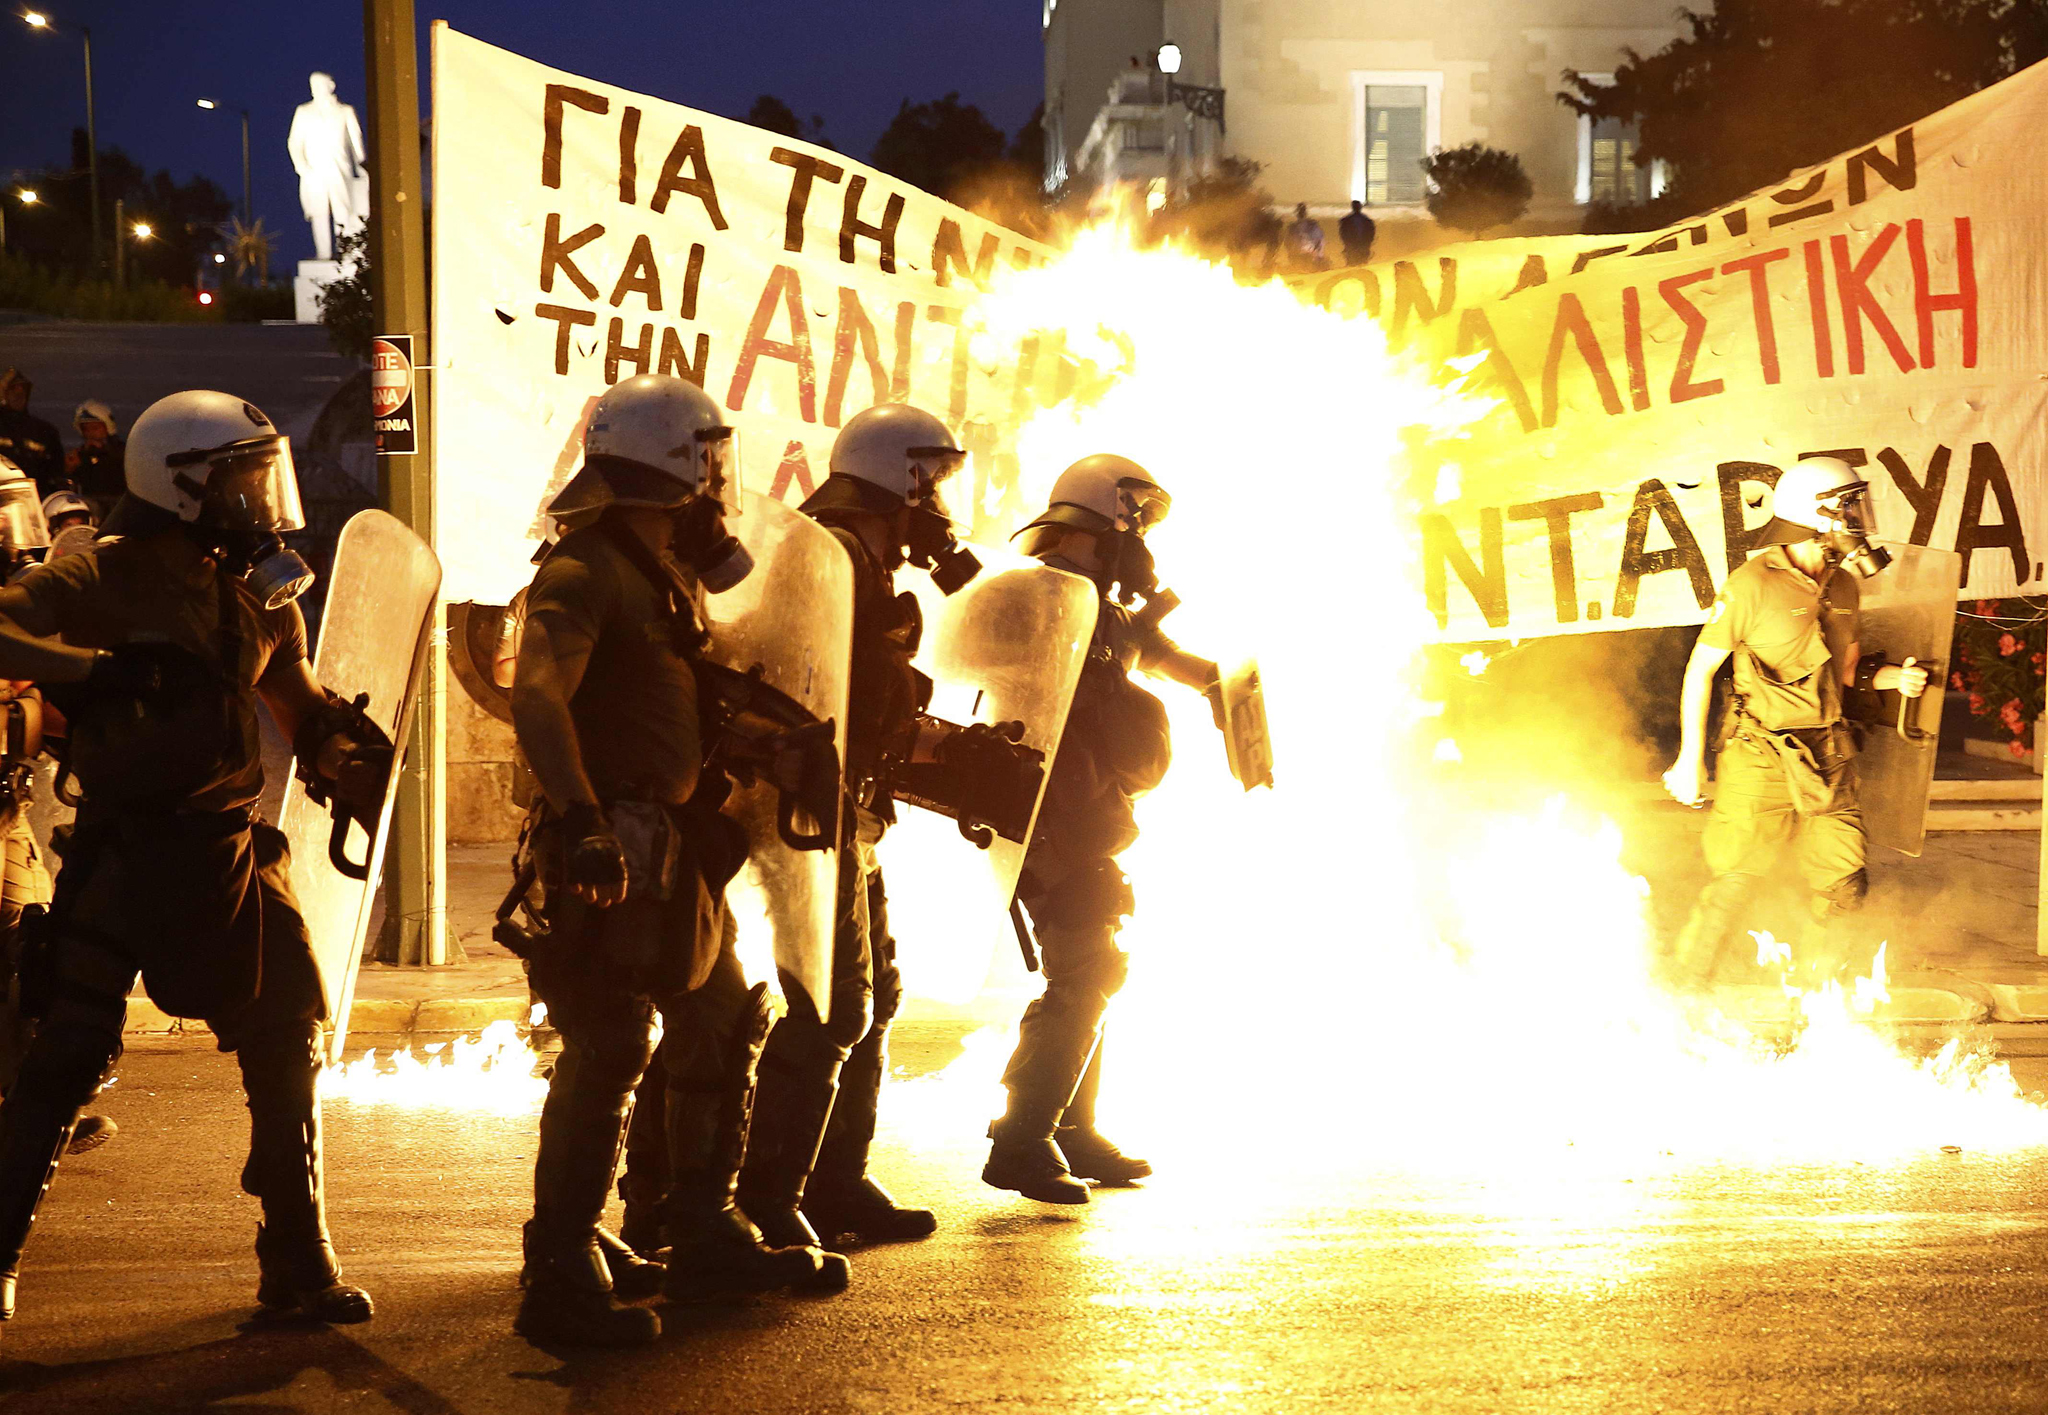 Riot police stand amongst the flames from exploded petrol bombs thrown by a small group of anti-establishment demonstrators in front of parliament in Athens, Greece July 15, 2015. Prime Minister Alexis Tsipras battled to win lawmakers' approval on Wednesday for a bailout deal to keep Greece in the euro, while the country's creditors, pressed by the IMF to provide massive debt relief, struggled to agree a financial lifeline. REUTERS/Yannis Behrakis